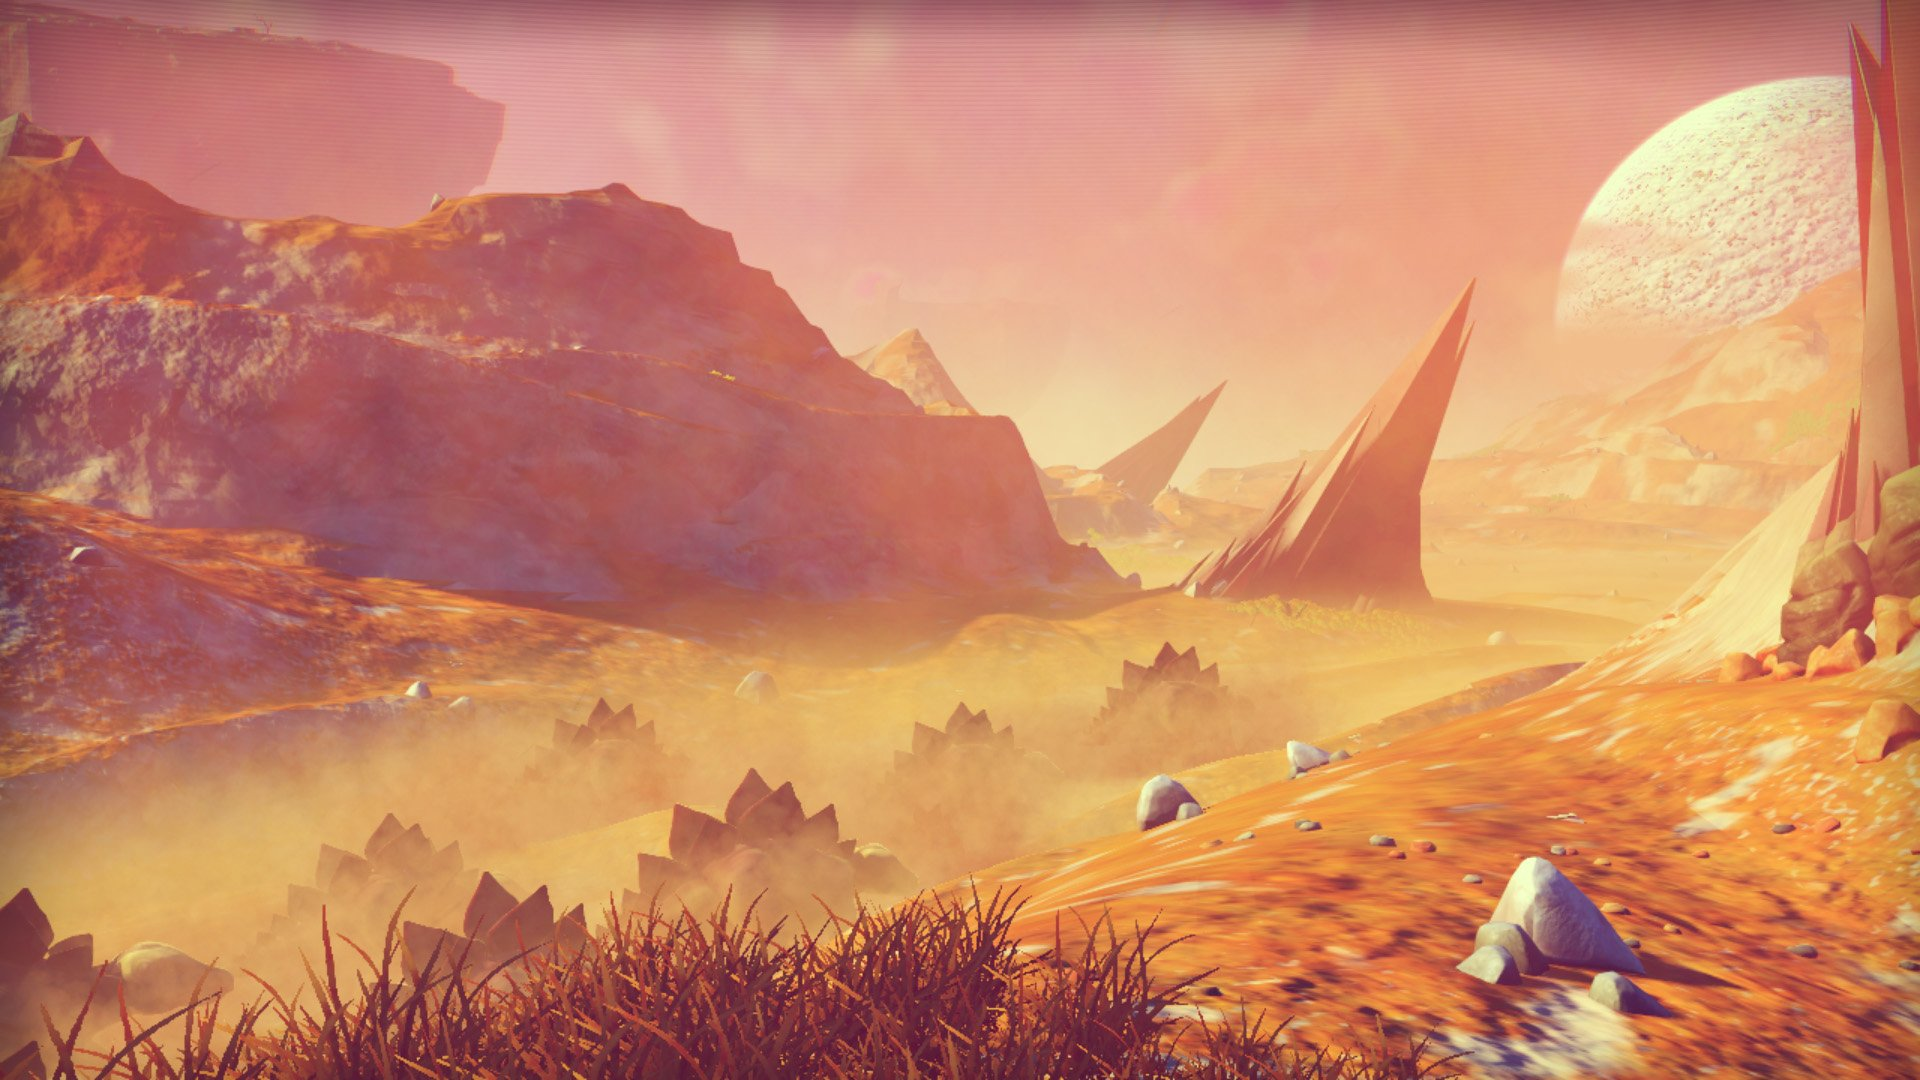 sony s refund policy under scrutiny after no man s sky launch